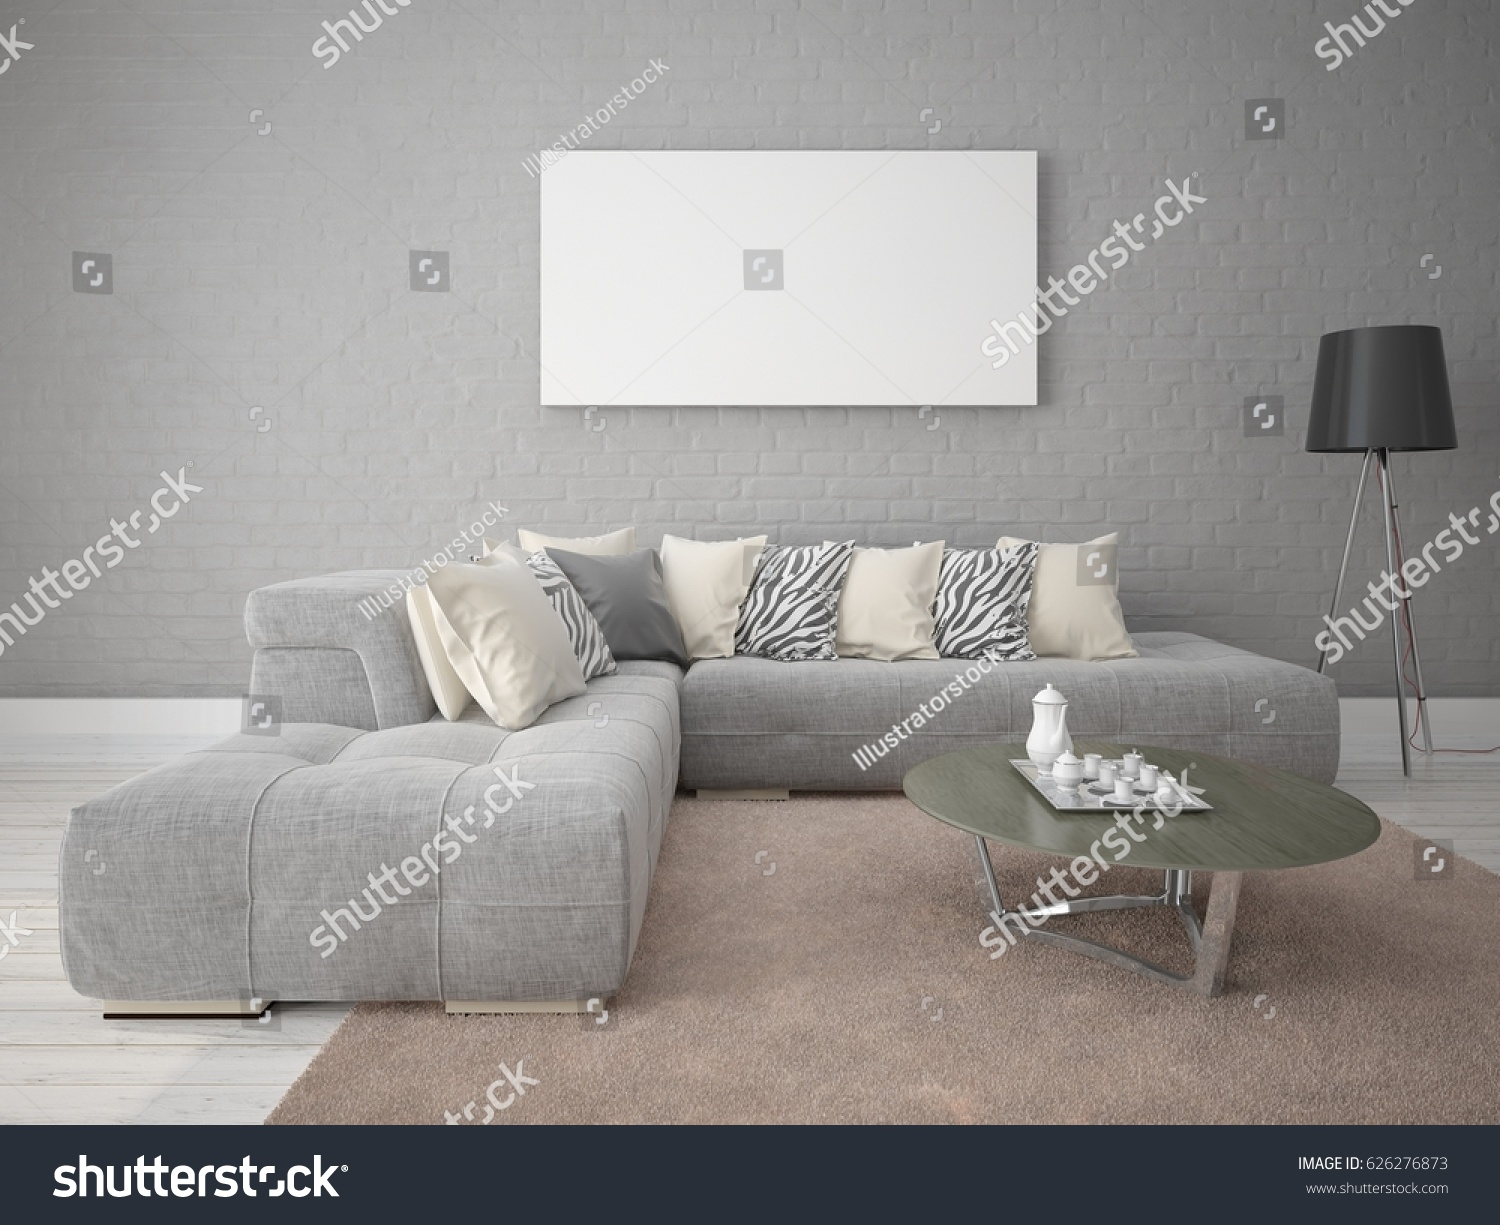 Mock up a modern living room with a stylish sofa set against a gray brick  wall. Mock Modern Living Room Stylish Sofa Stock Illustration 626276873